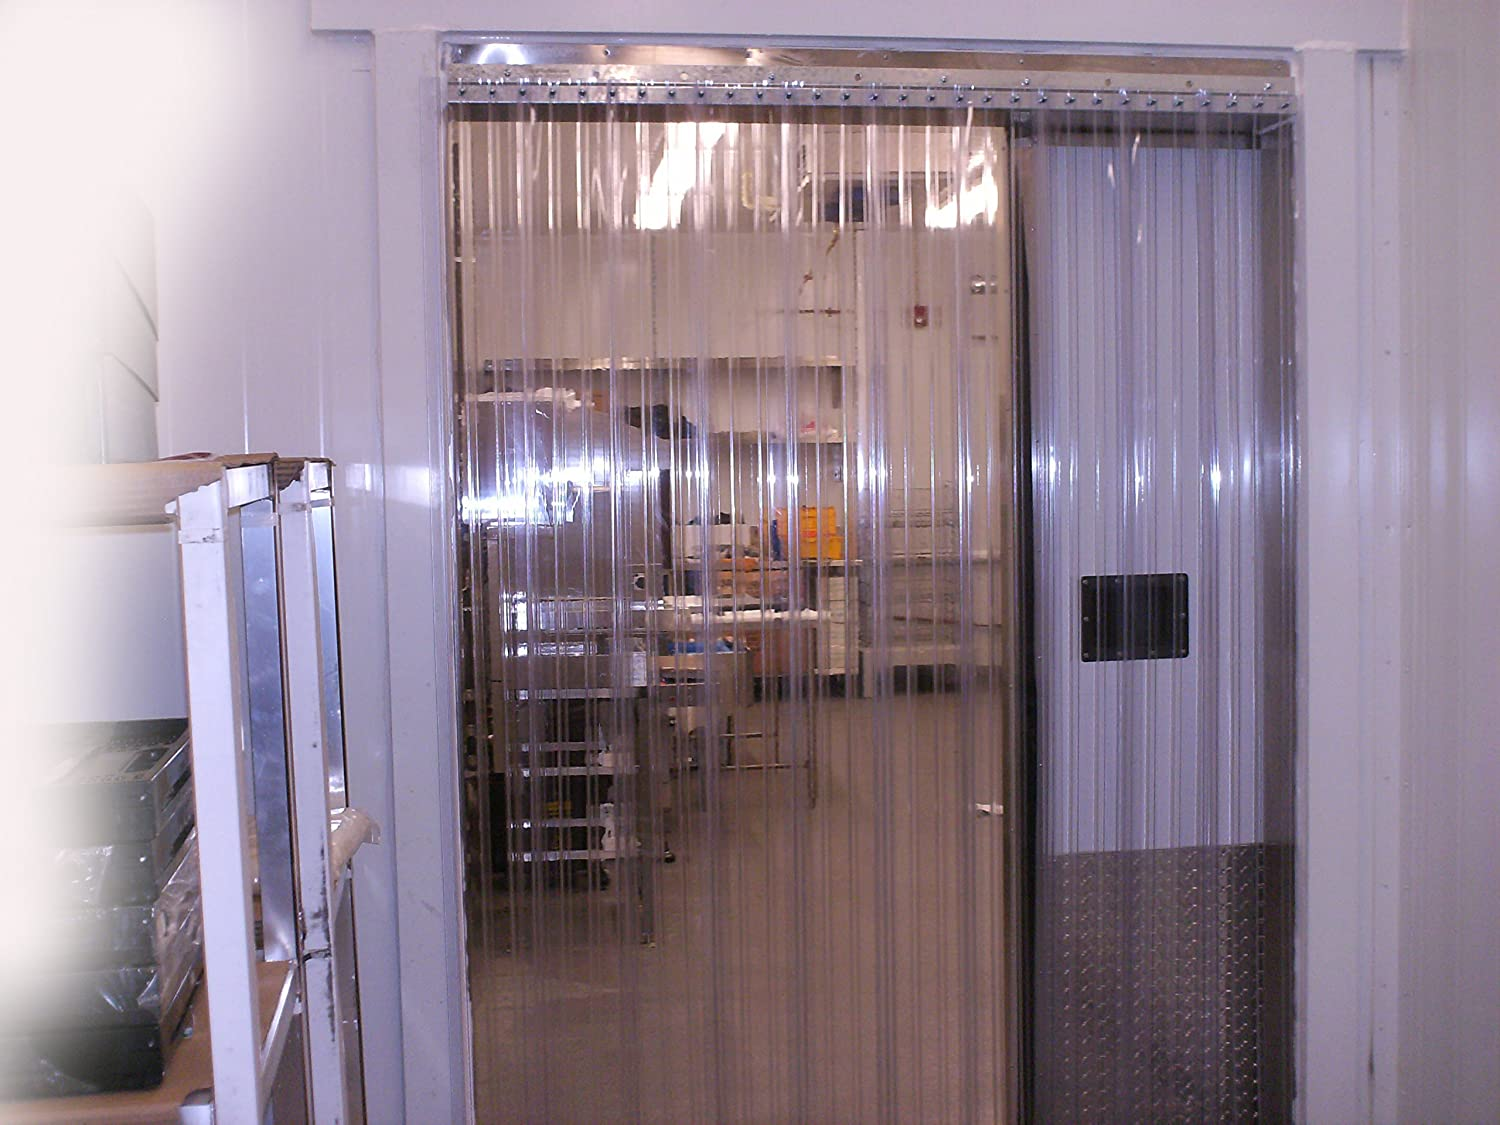 Strip-Curtains.com: Strip Door Curtain Max 87% OFF - 60 Width Limited Special Price 5 X 9 ft in.